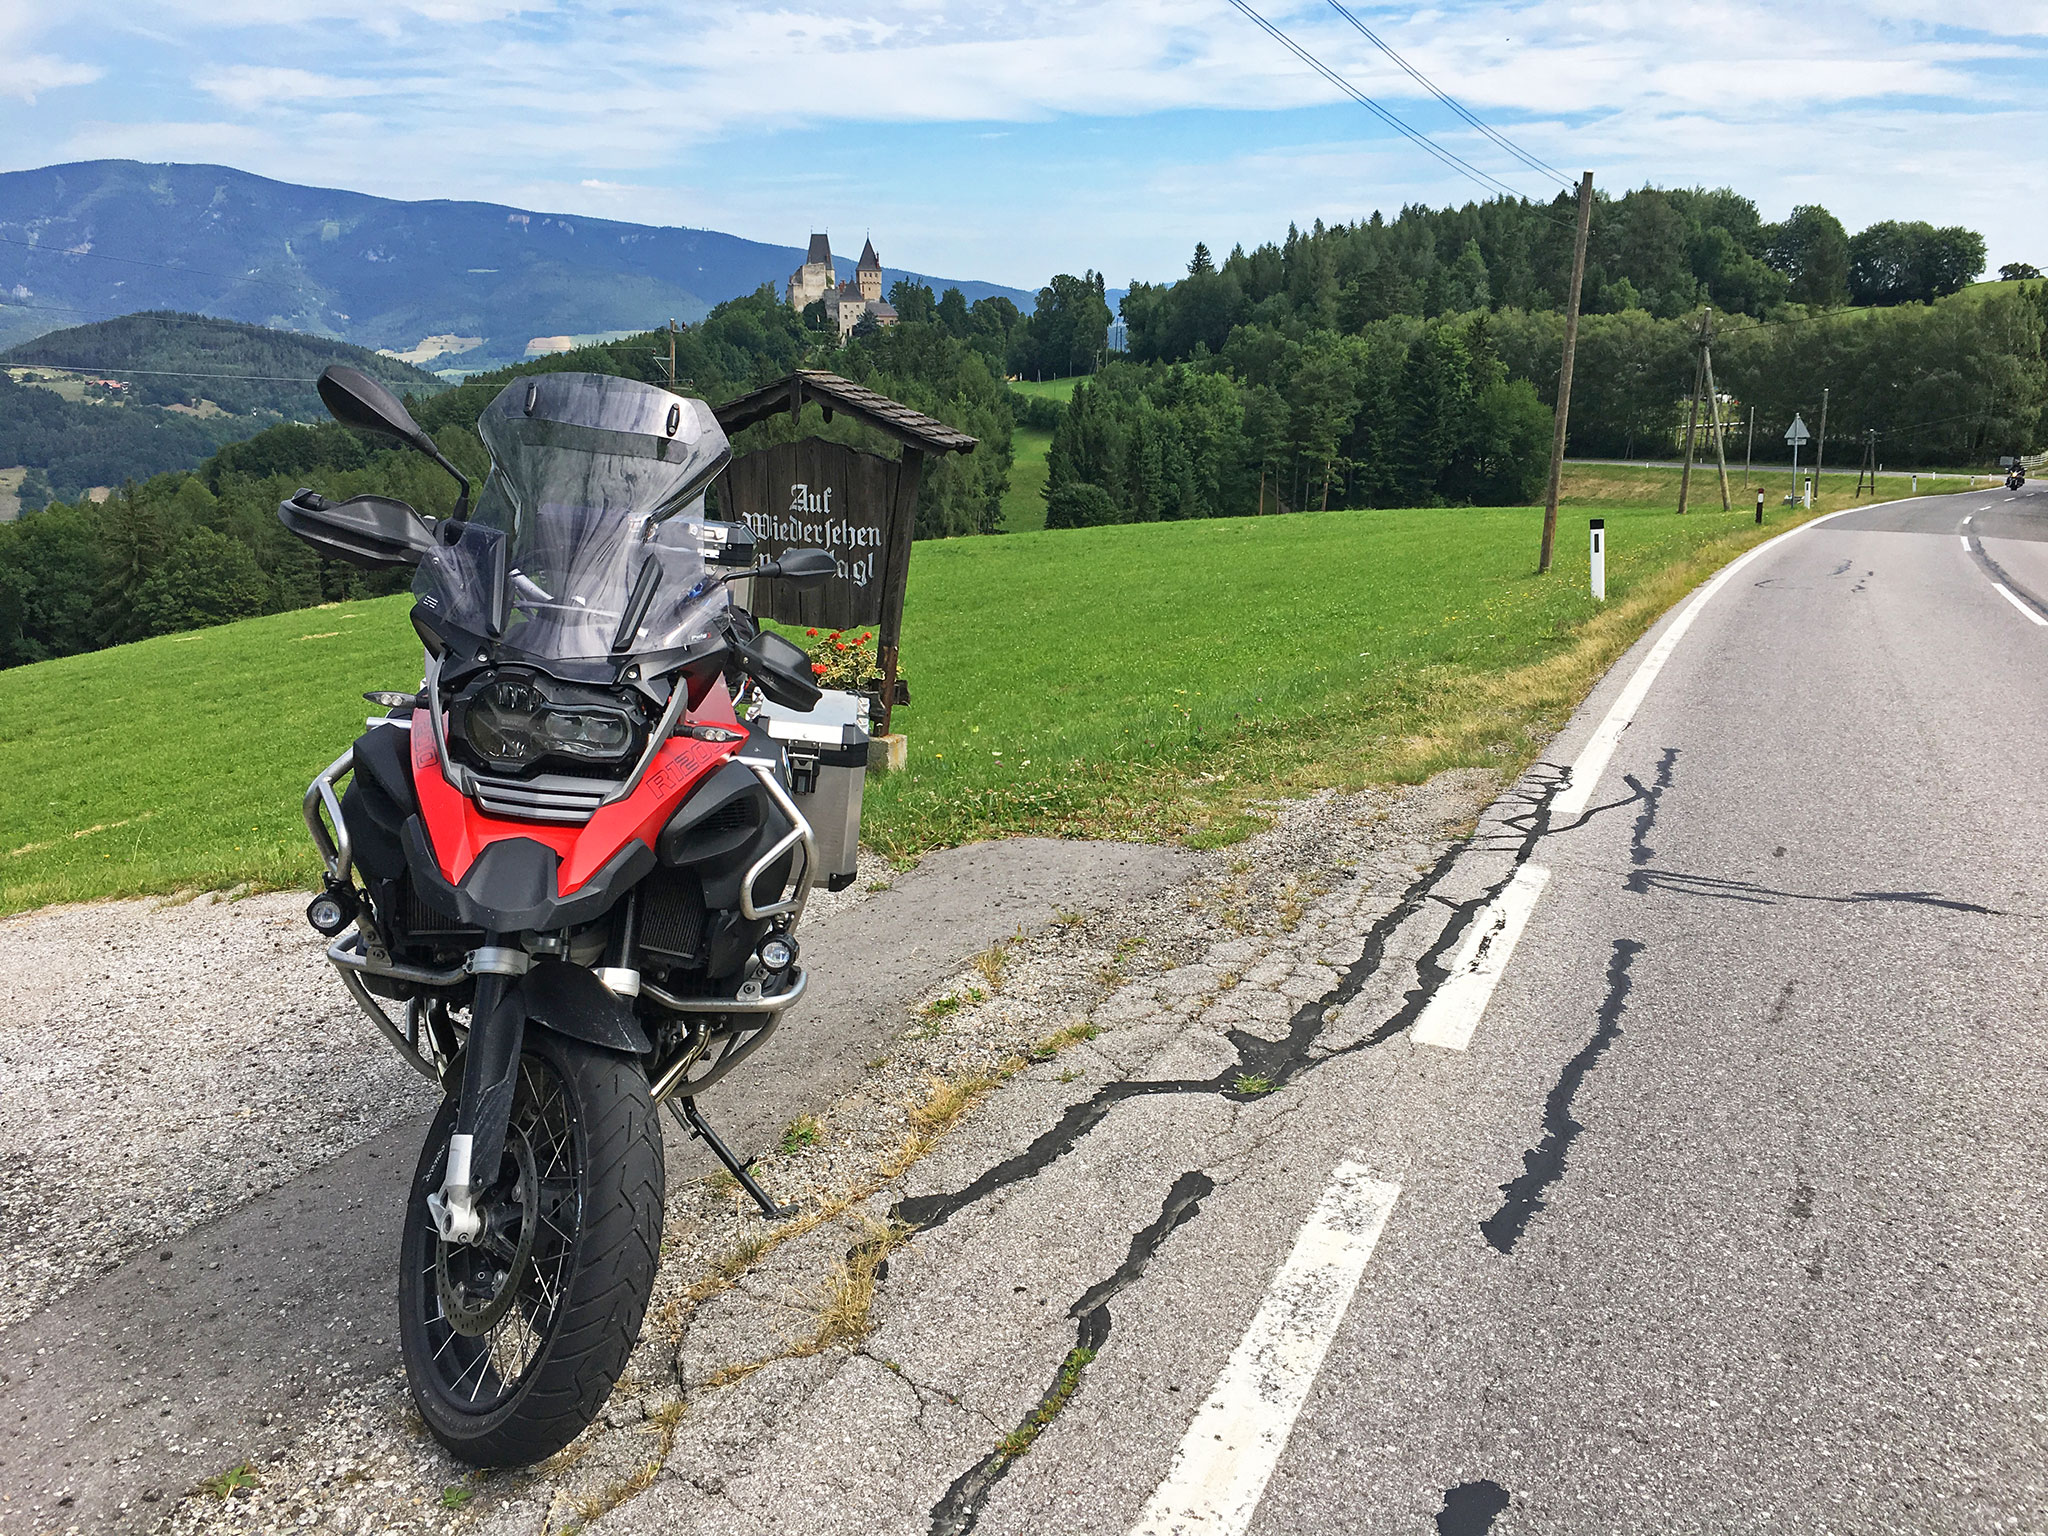 The Beemer and Austrian hills